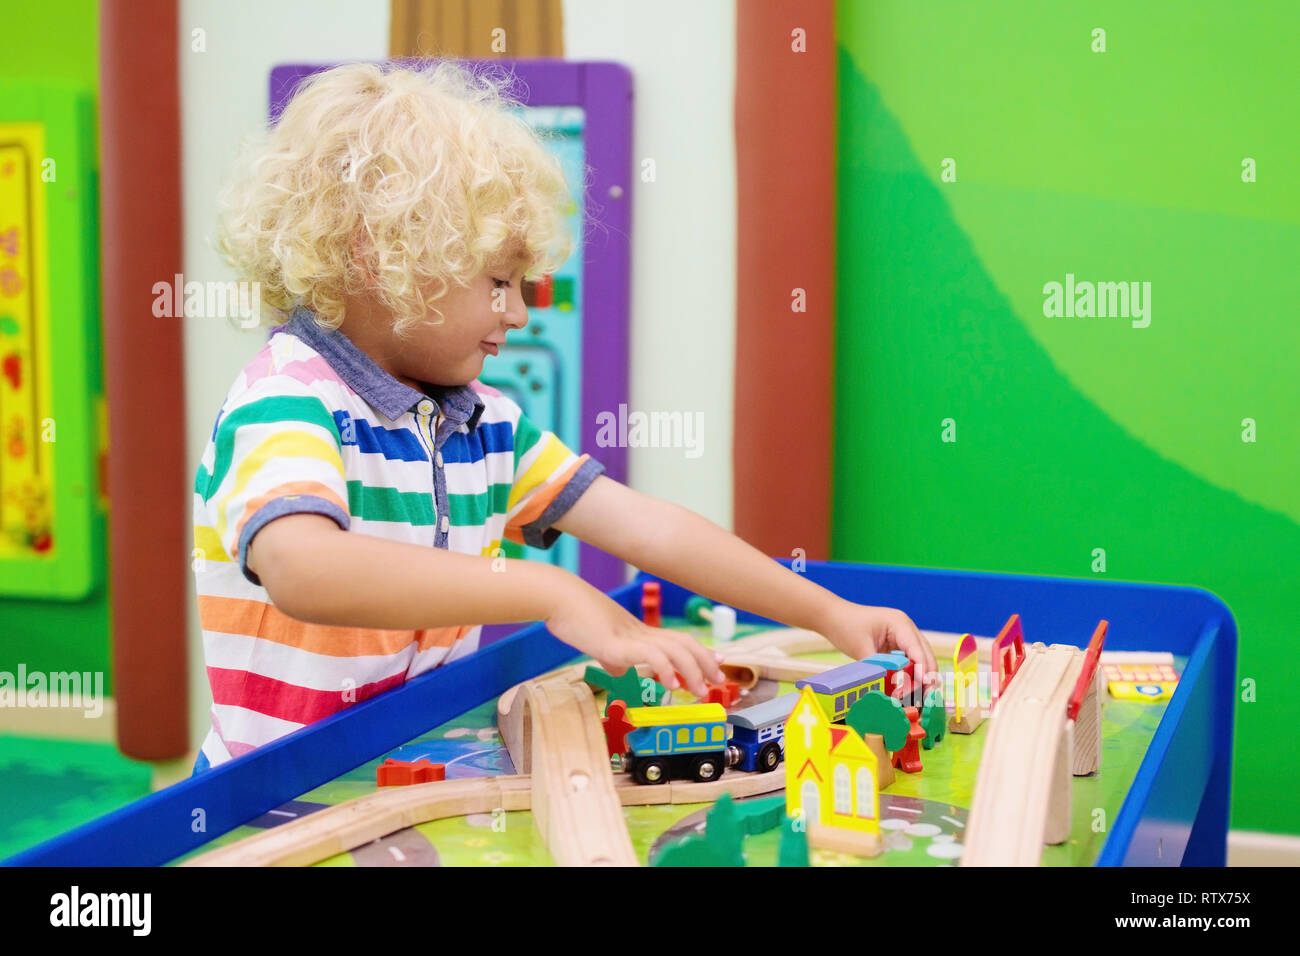 Kids Play Toy Railroad Little Blond Curly Boy With Wooden Trains In